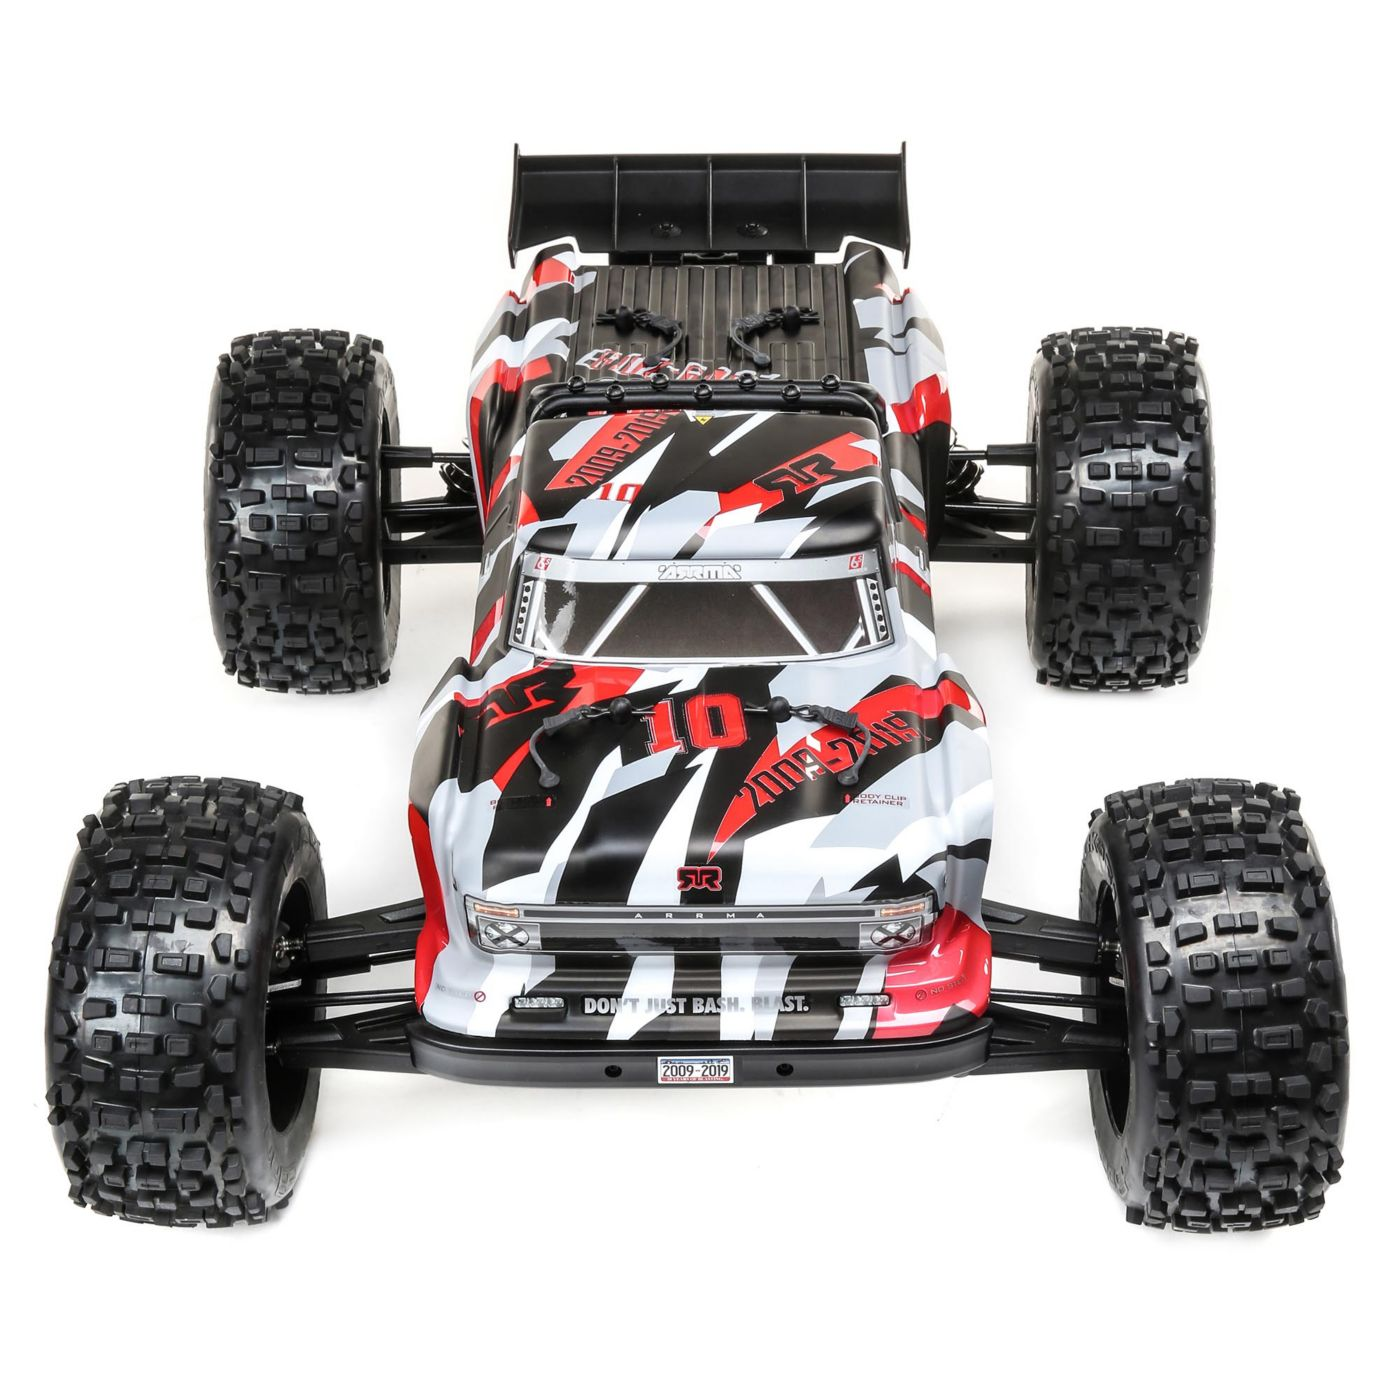 Enter to Win a 10th Anniversary ARRMA Outcast from Tower Hobbies